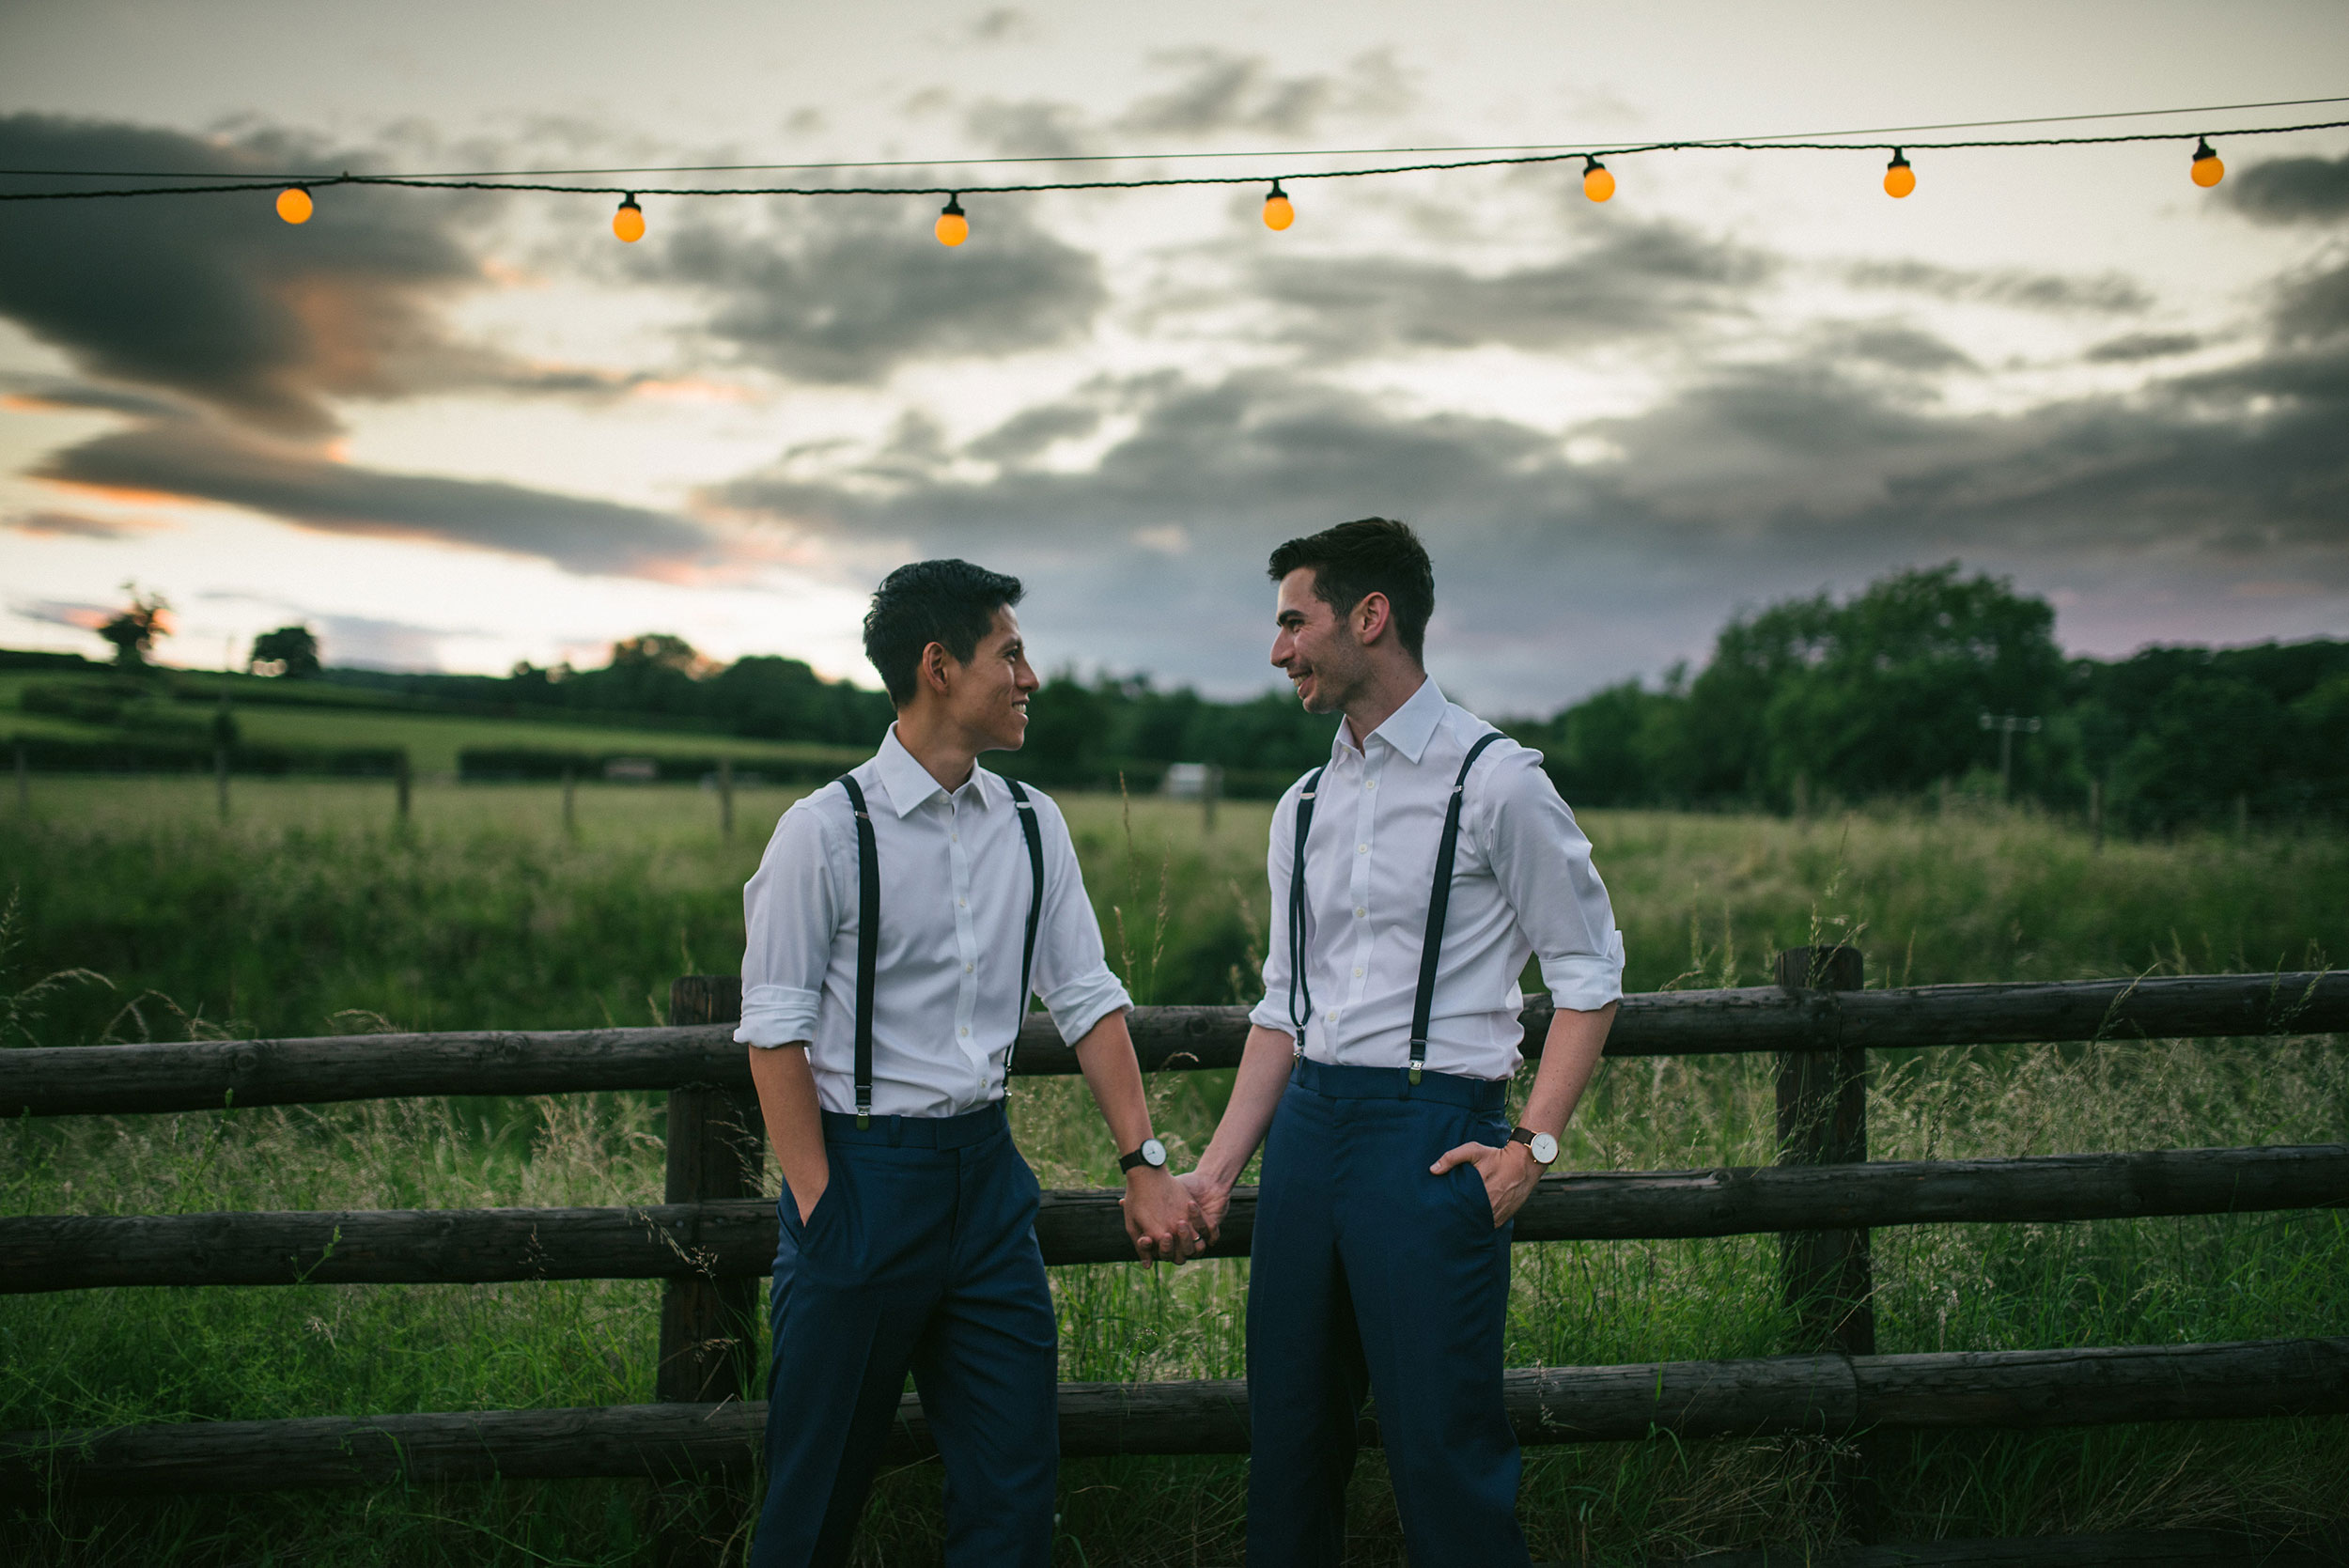 golden hour photo of gay couple Sean & Eric during their same-sex wedding at Tower Hill Barns, shot by Che Birch-Hayes